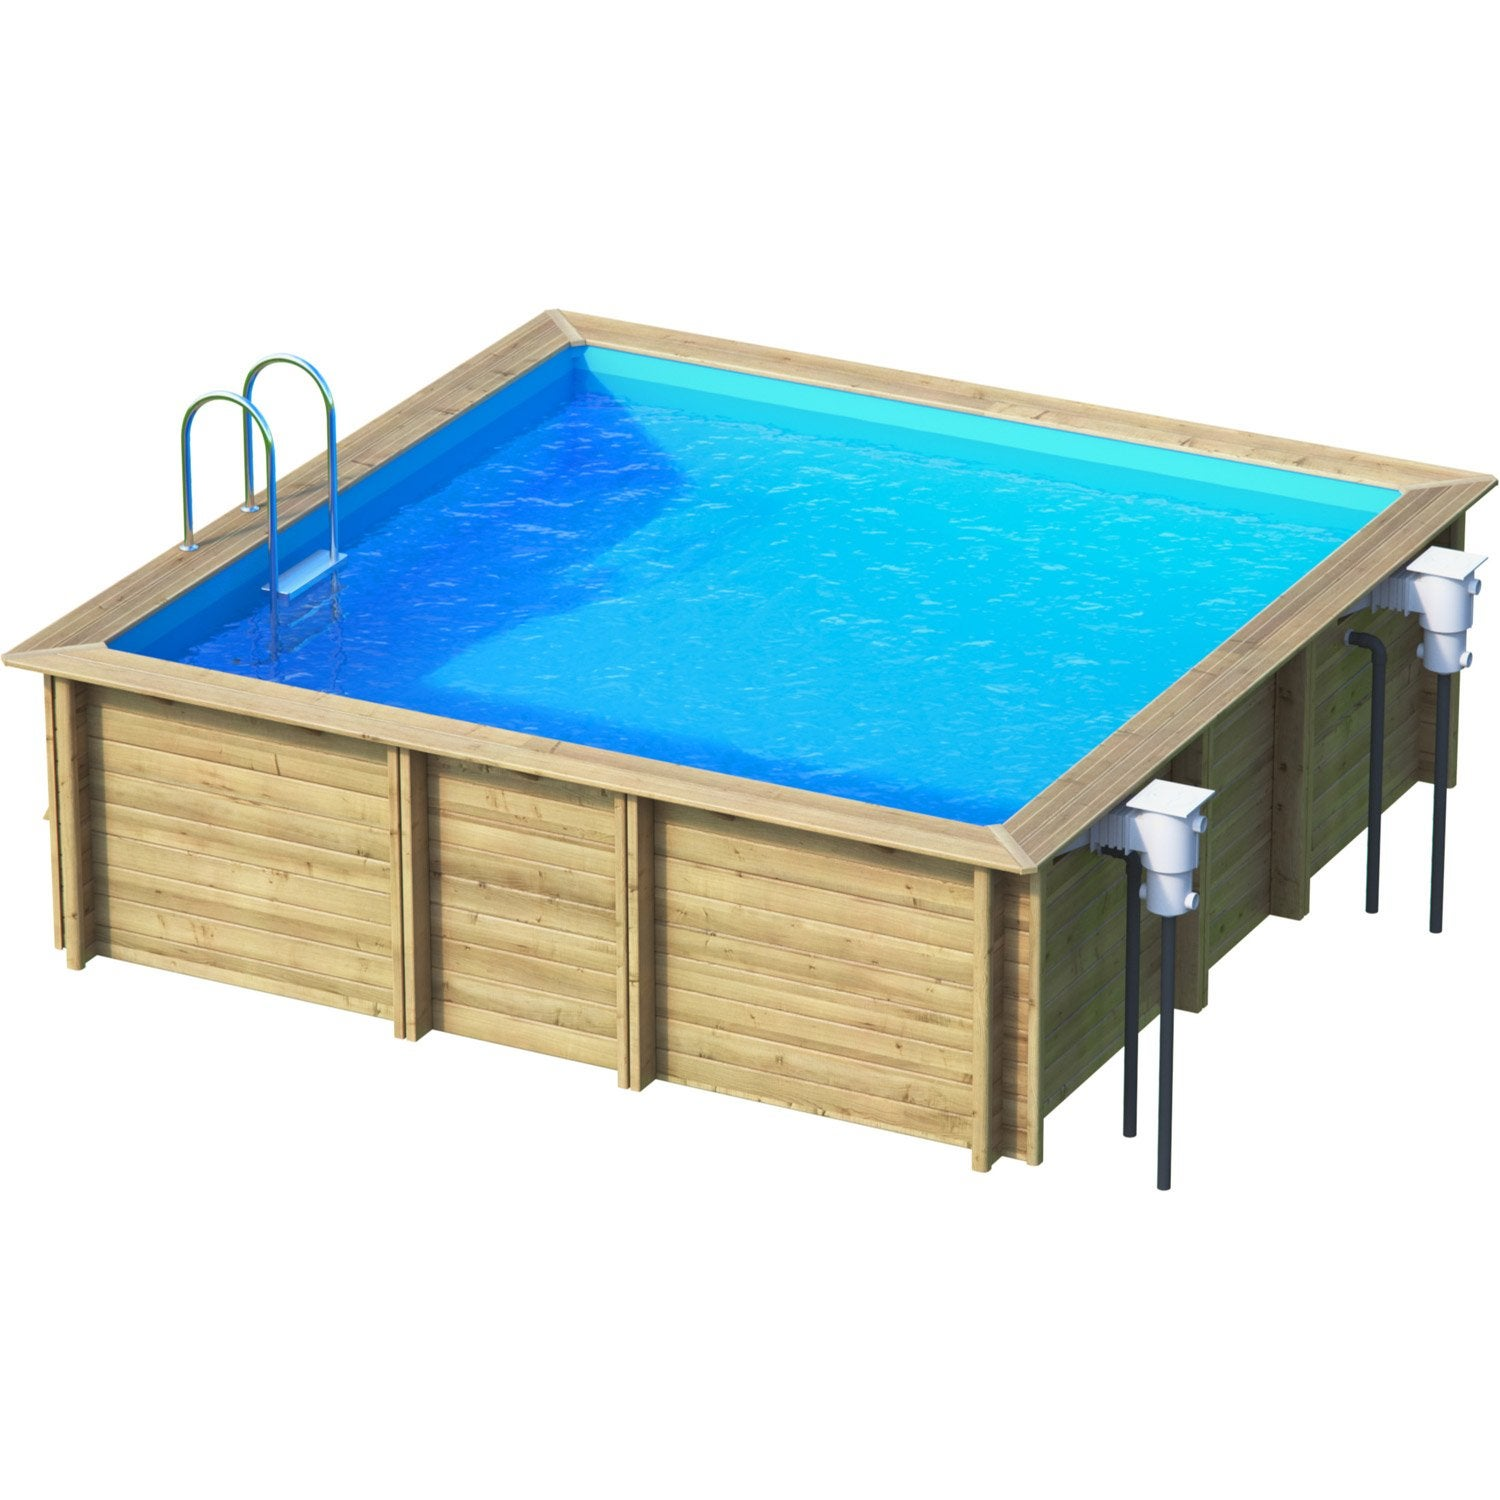 Piscine bois weva leroy merlin for Le roy merlin piscine